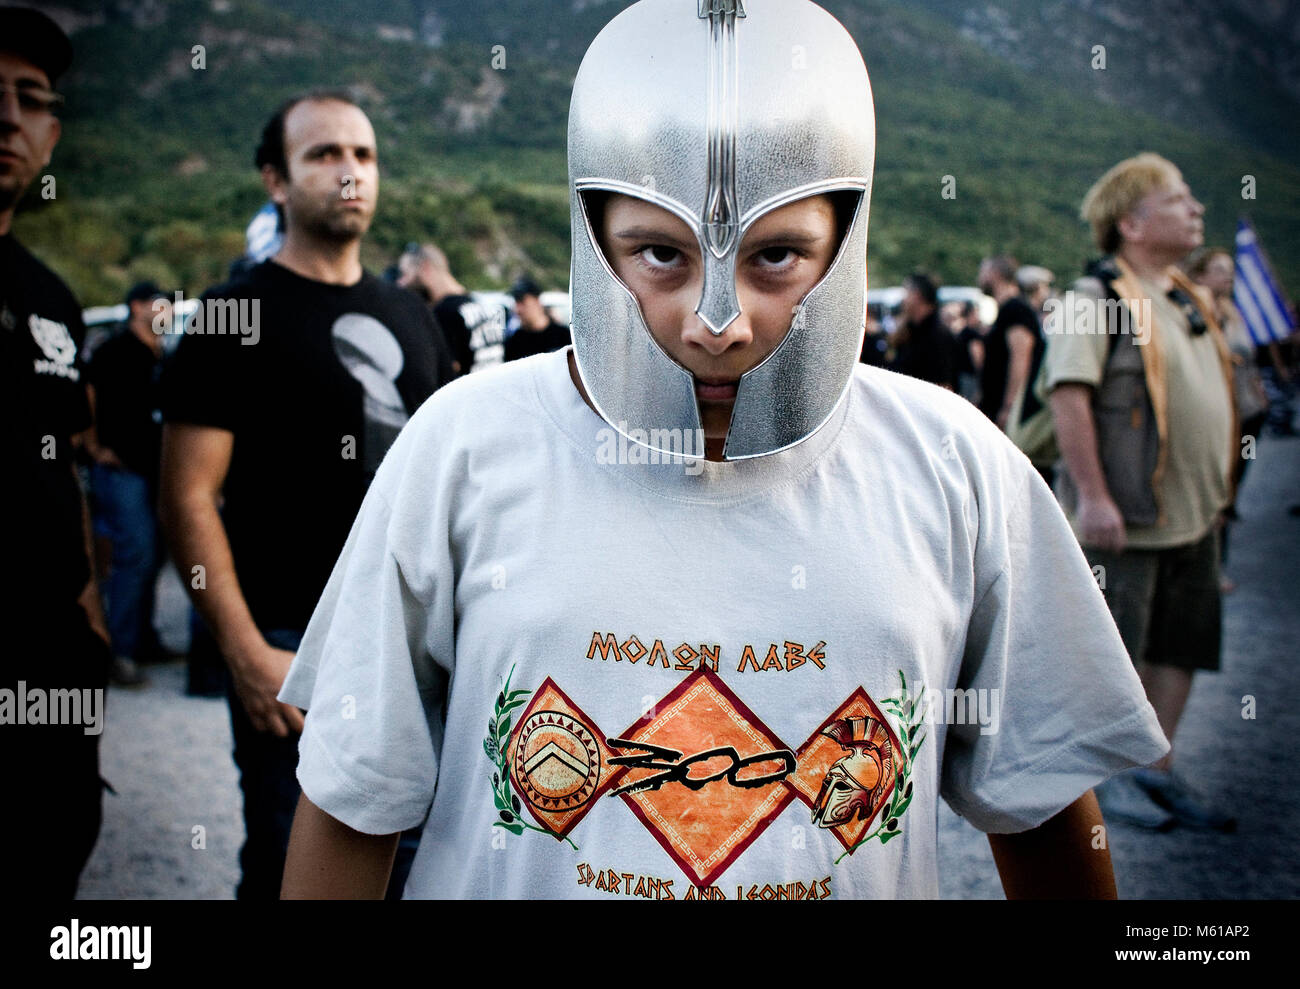 Greece : Golden Dawn -  25/08/2012  -  Greece / Thermopylae  -  Child wears ancient greek helmet and t-shirt with - Stock Image